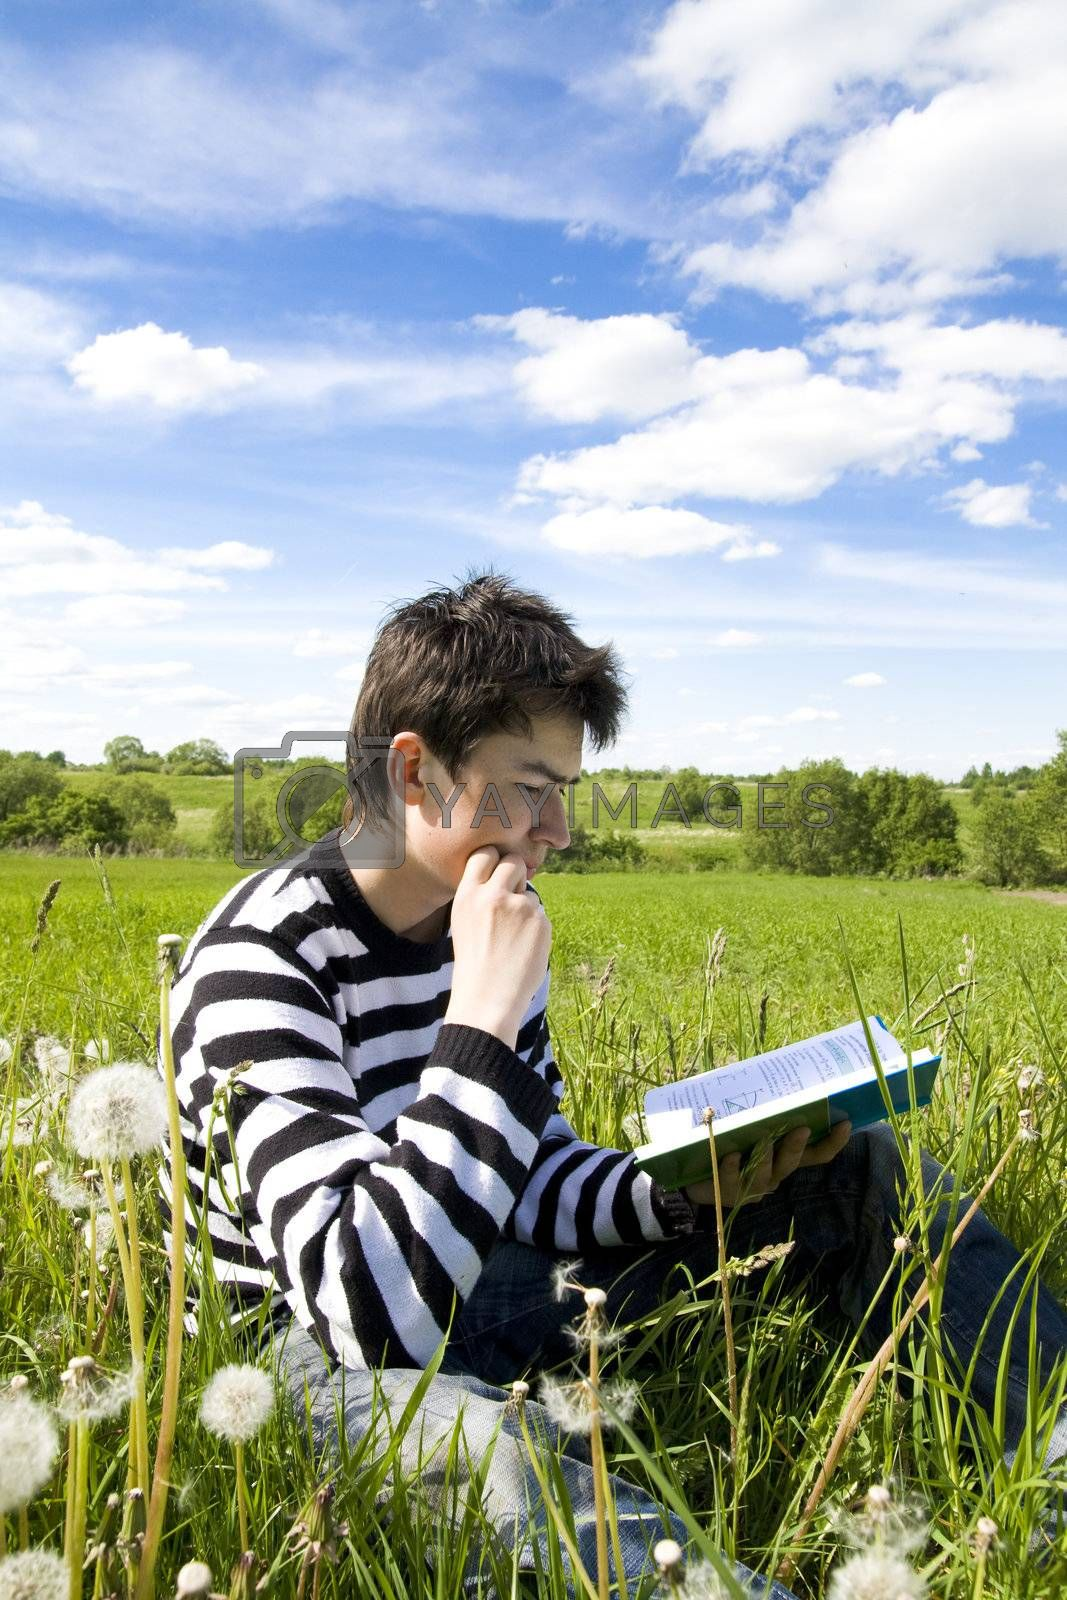 Boy reading a book on the grass. Time before examination